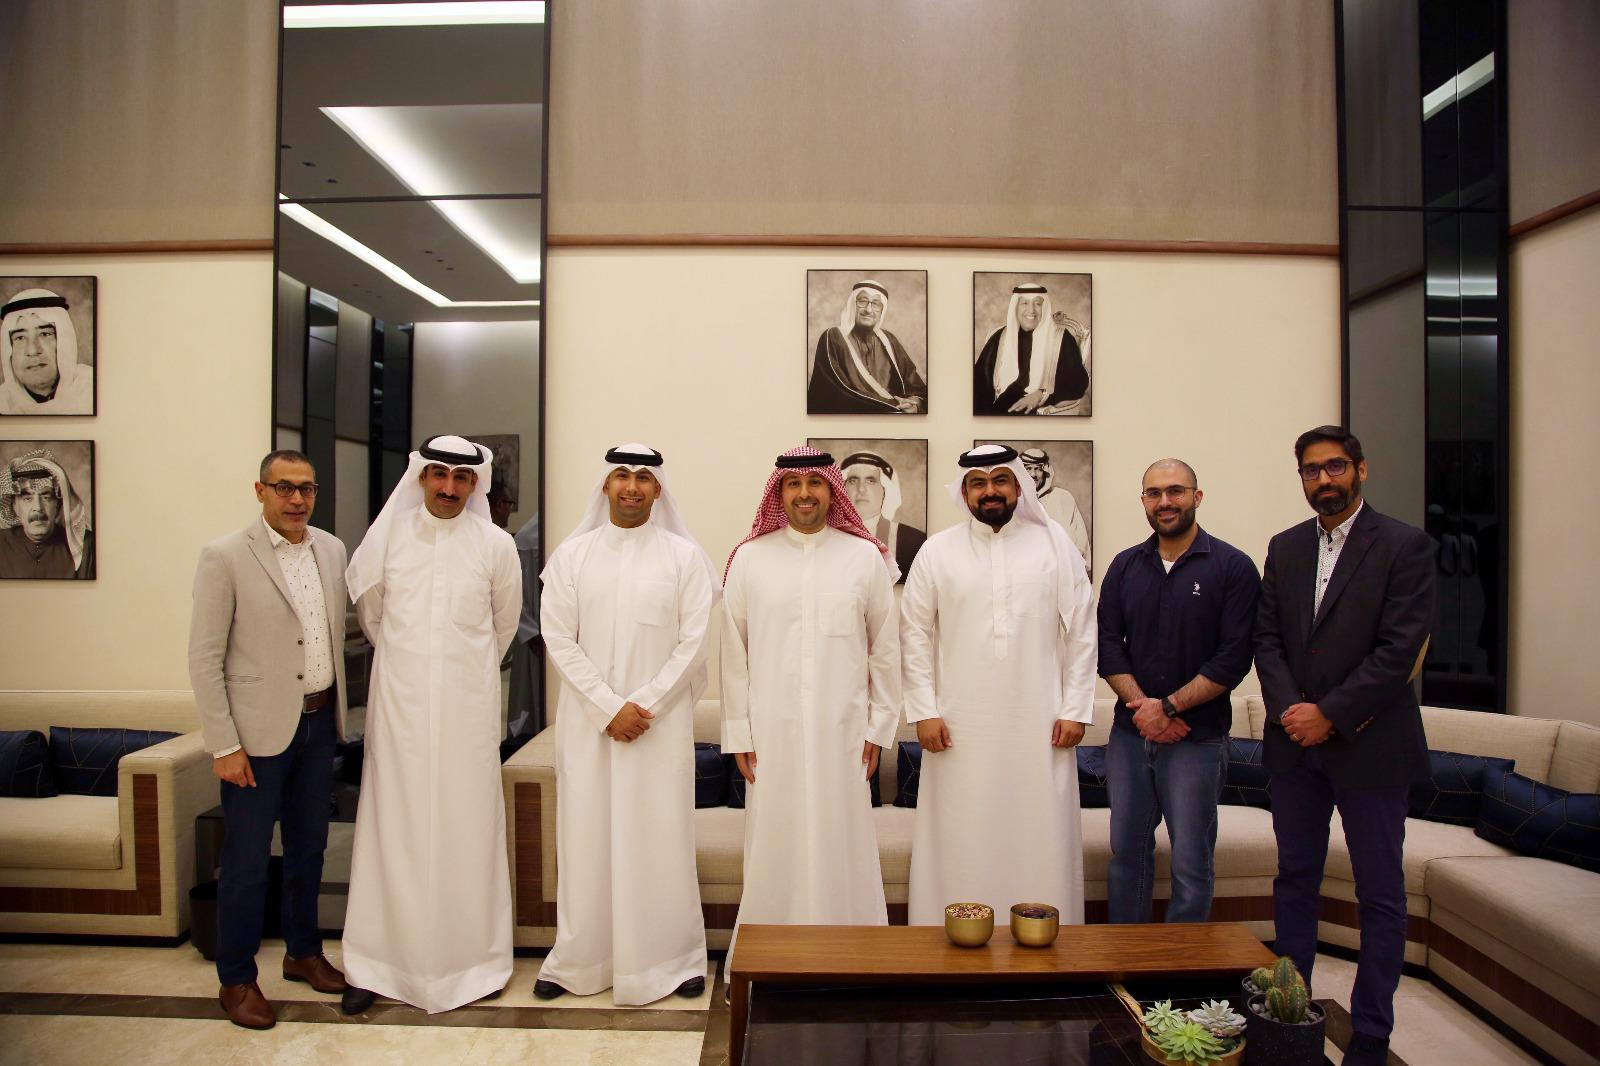 Following its SEED funding round earlier this year, Bahraini startup Inagrab secures follow-on investment from Faith Capital